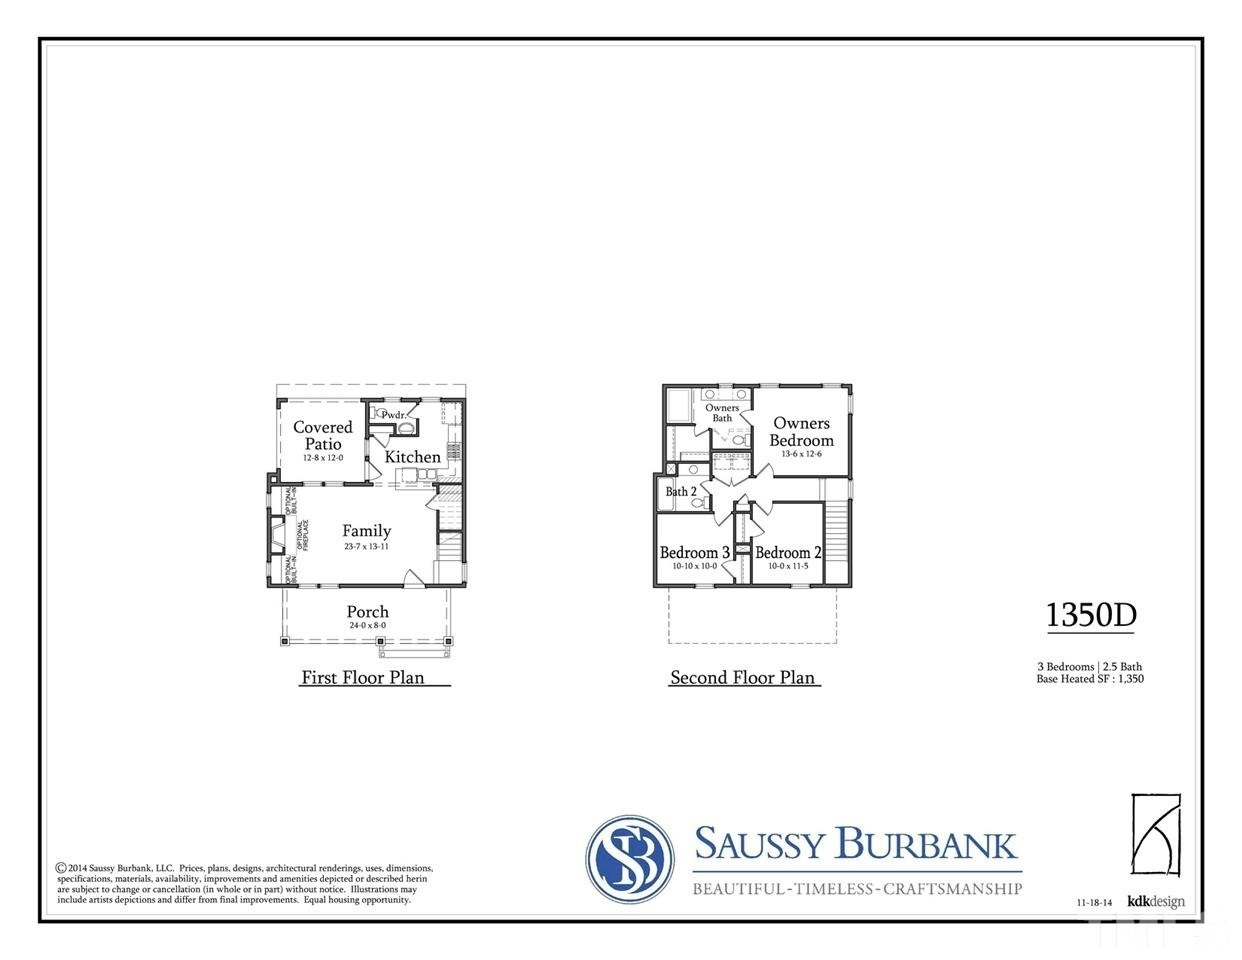 504 claremont dr chapel hill nc 27516 mls 1992499 redfin